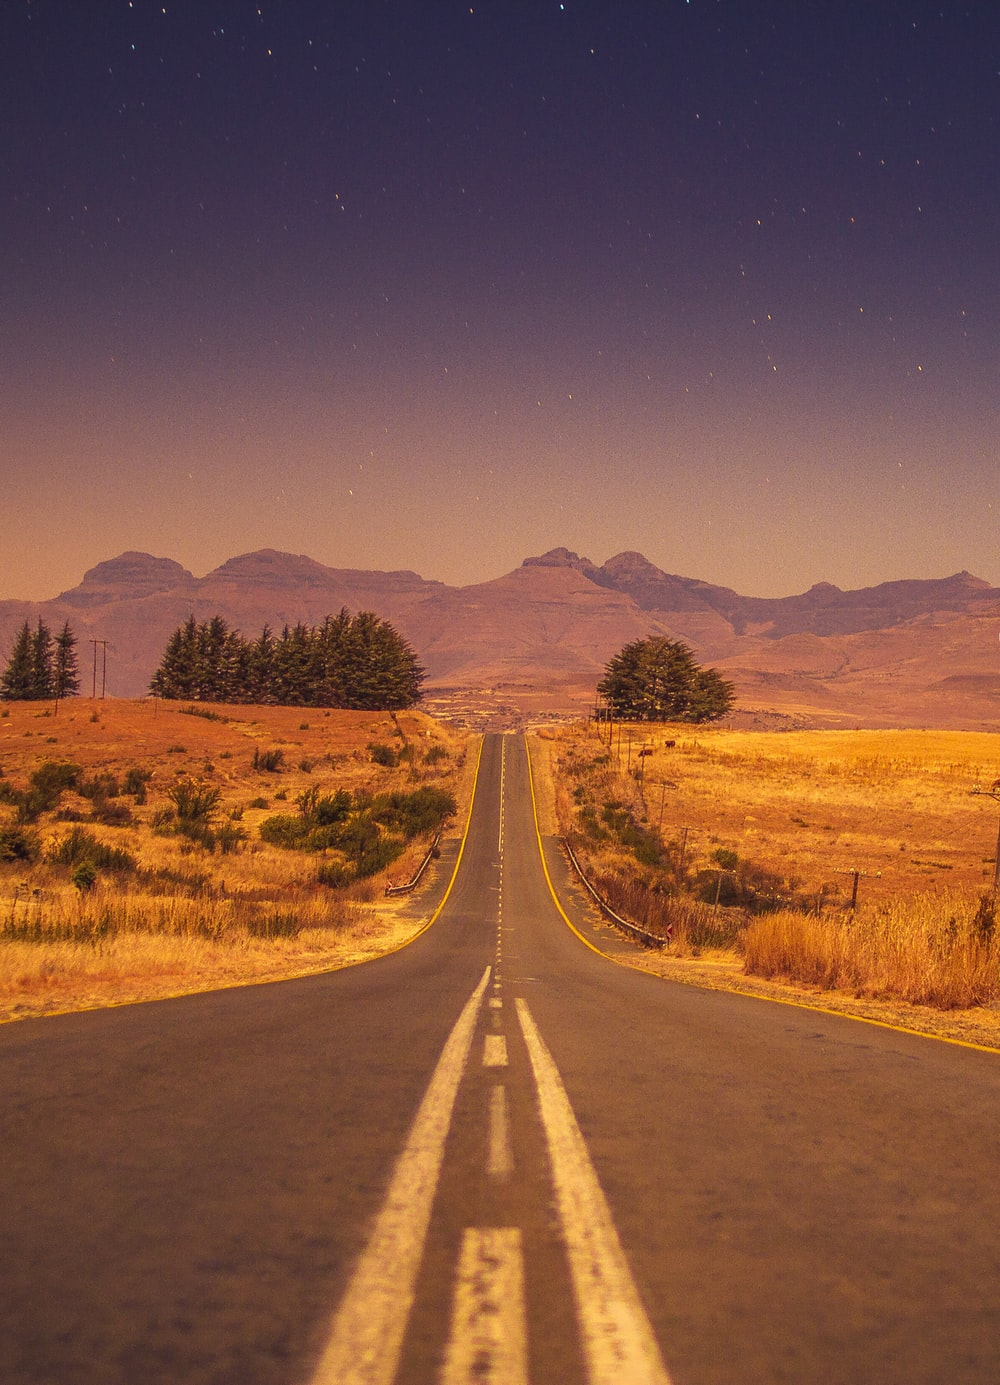 view of a long empty road